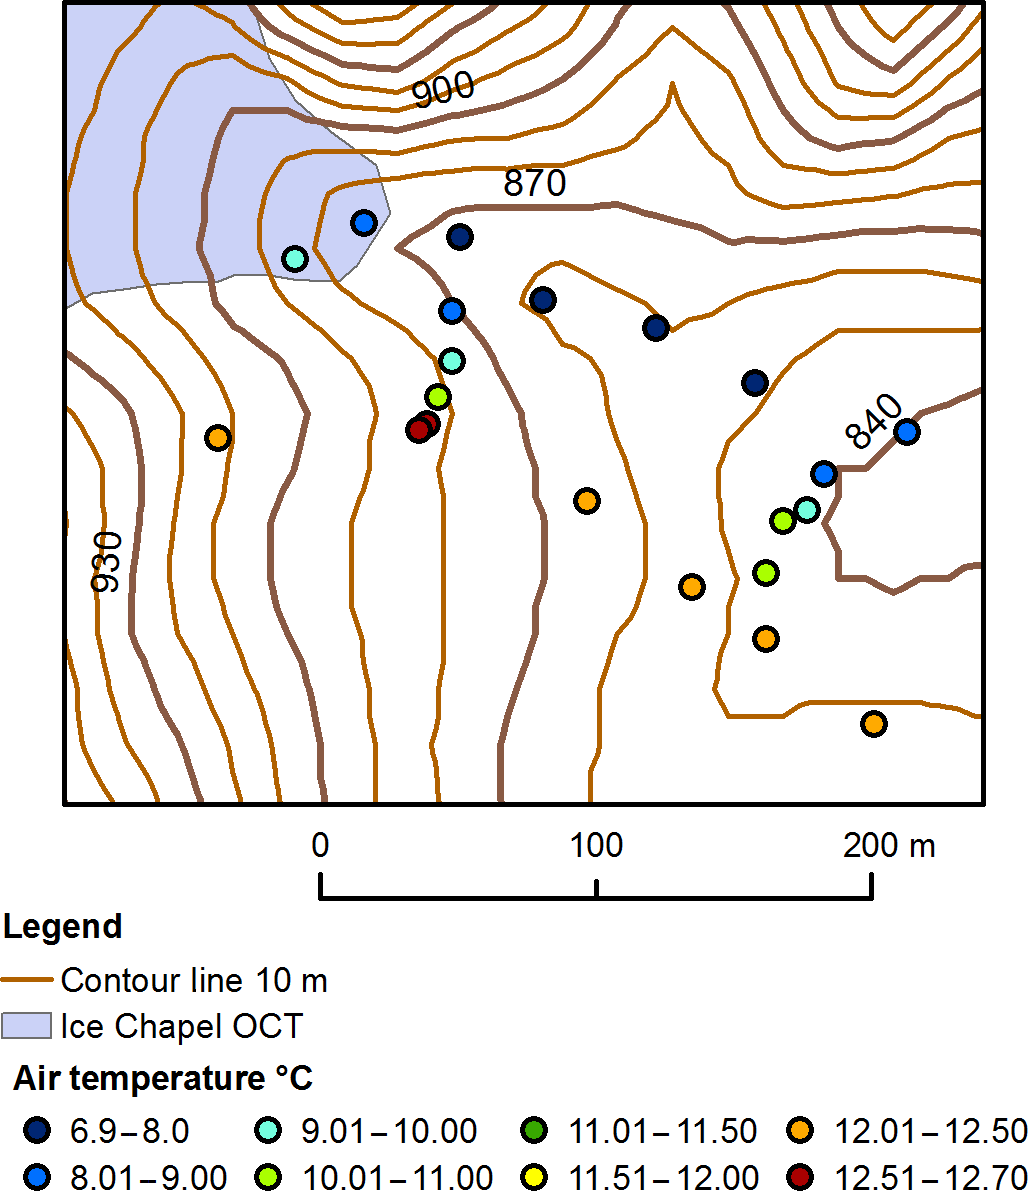 TC - Avalanches and micrometeorology driving mass and energy balance